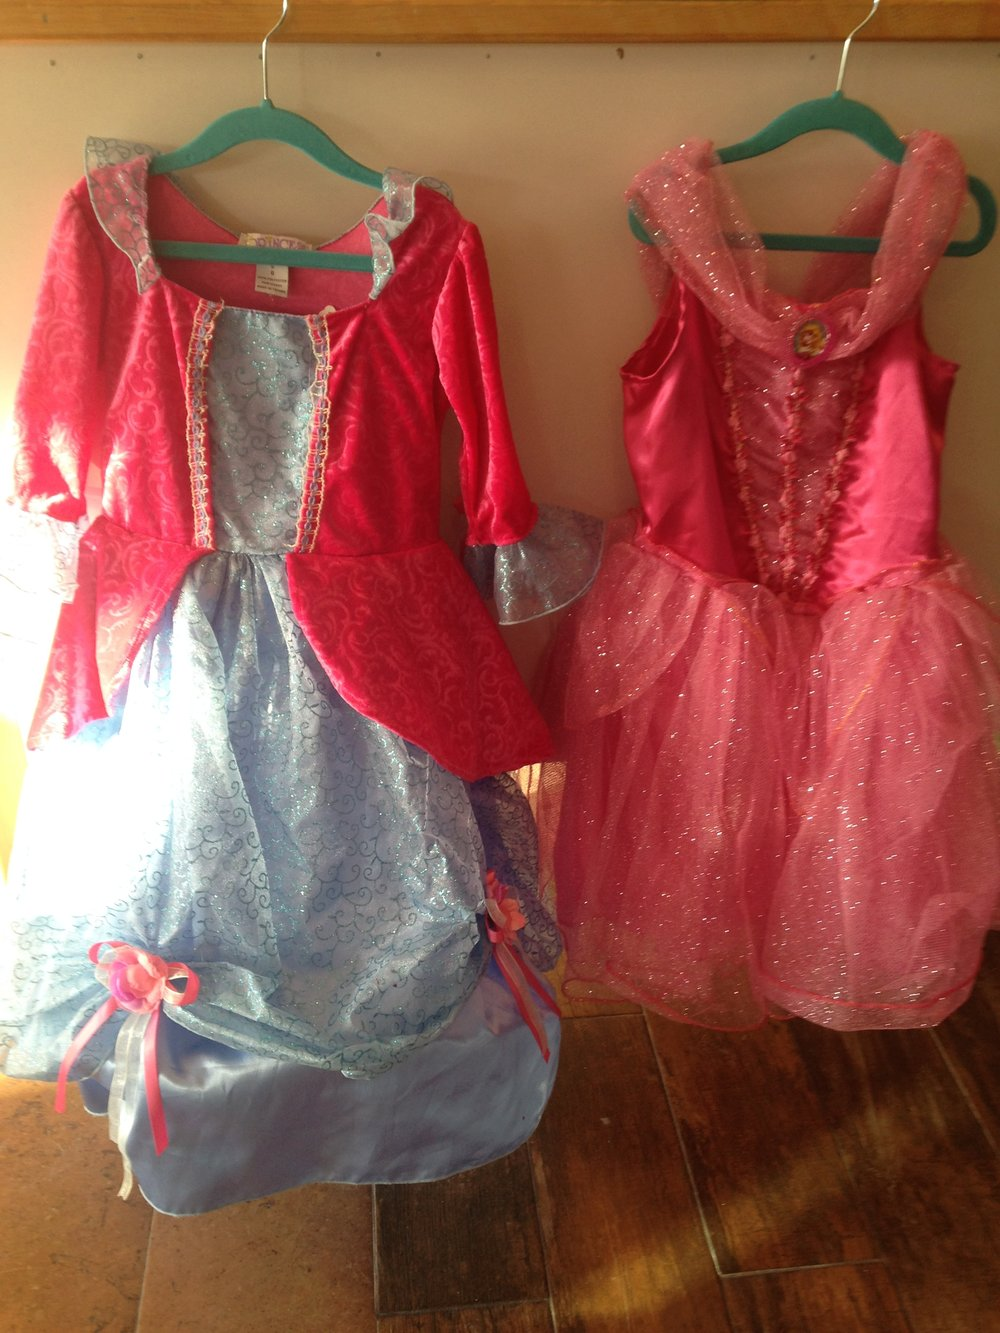 Princess dresses currently at junebug